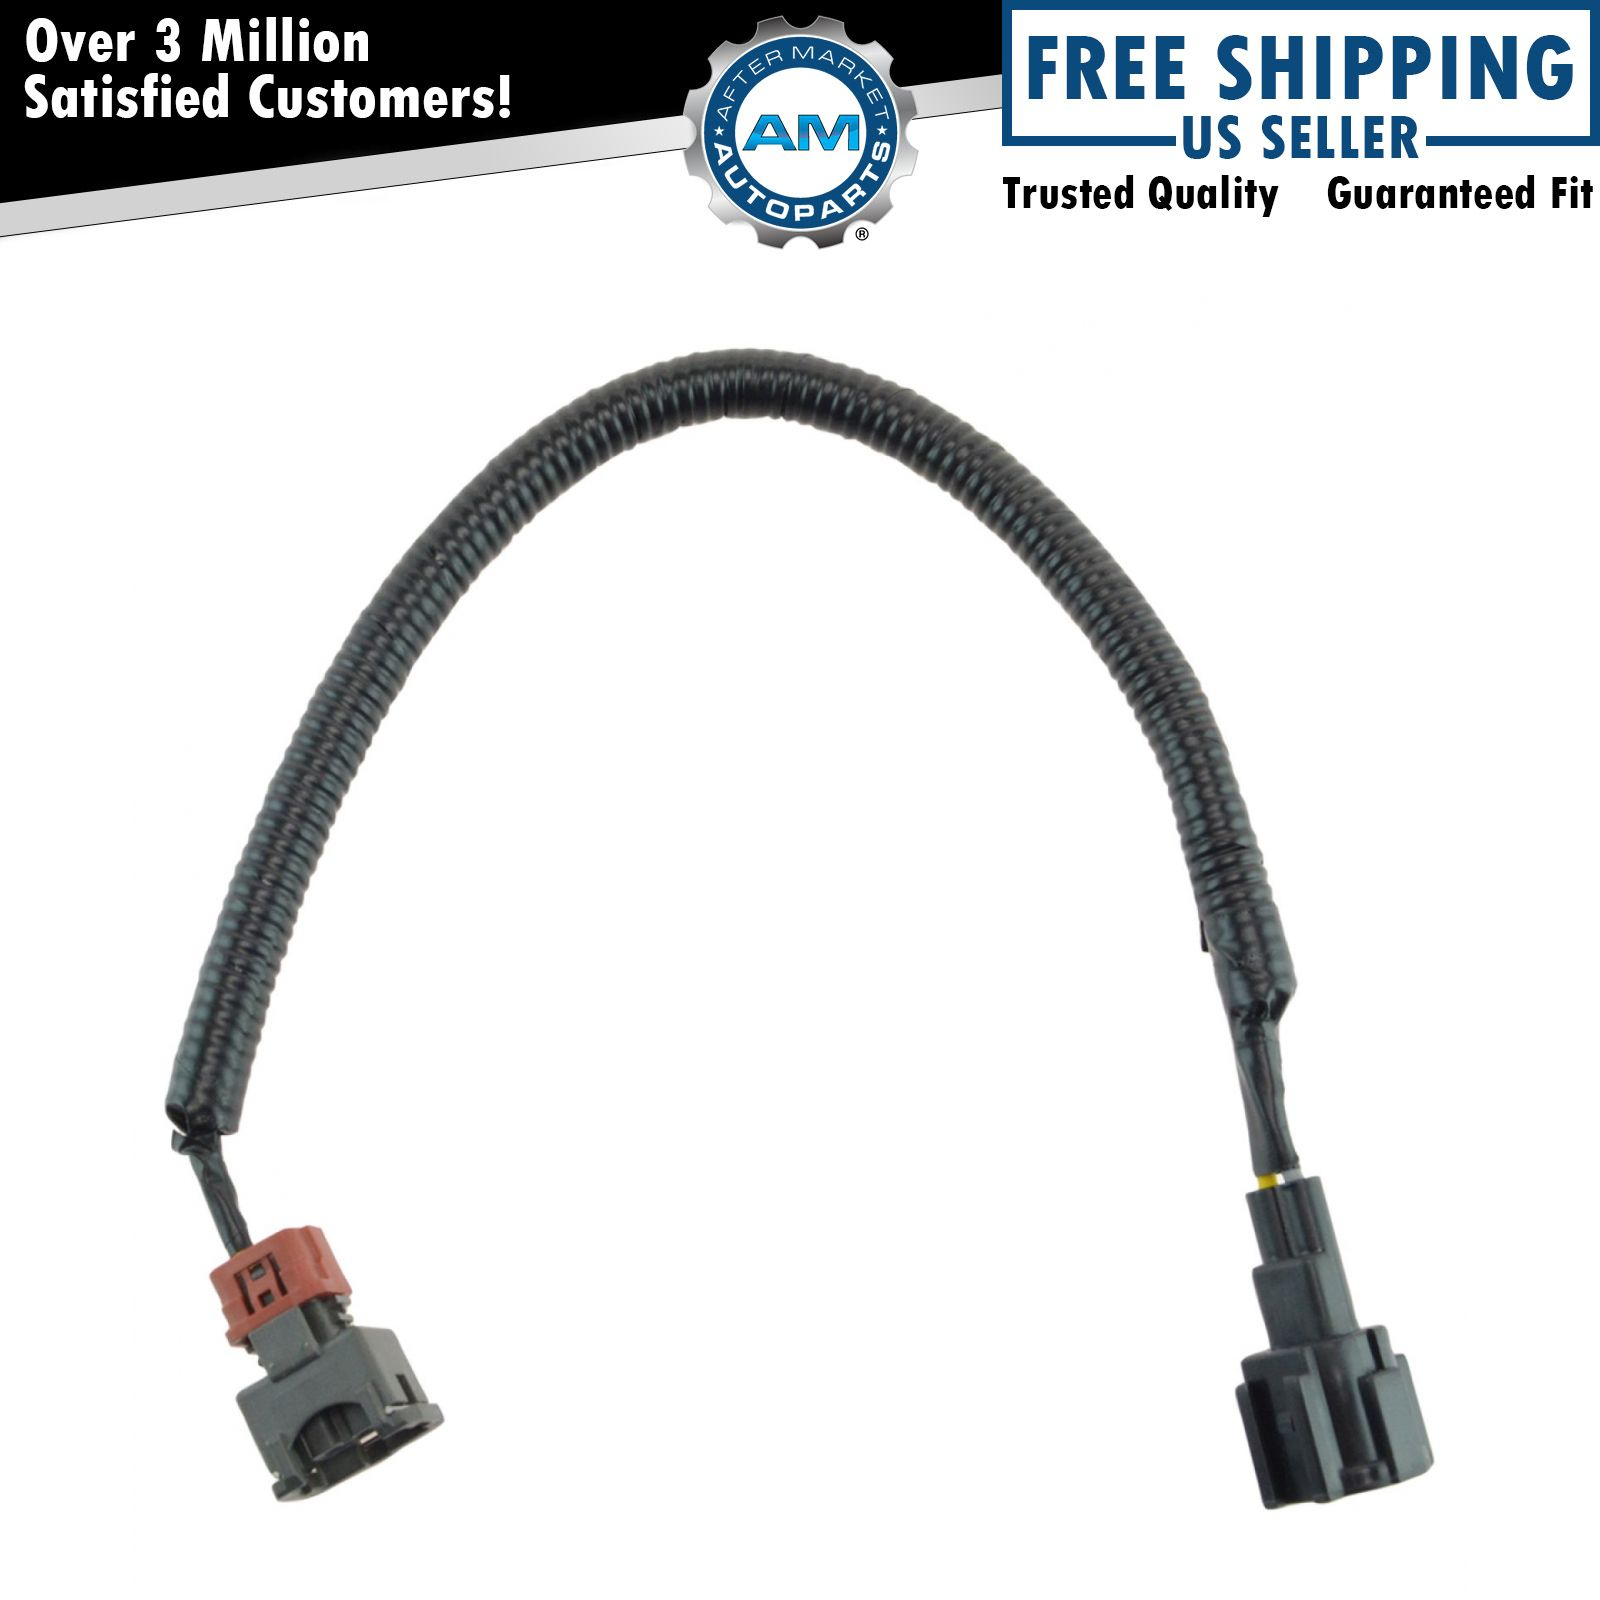 AM 824893556 engine knock sensor wire harness plug pigtail for nissan infiniti  at eliteediting.co